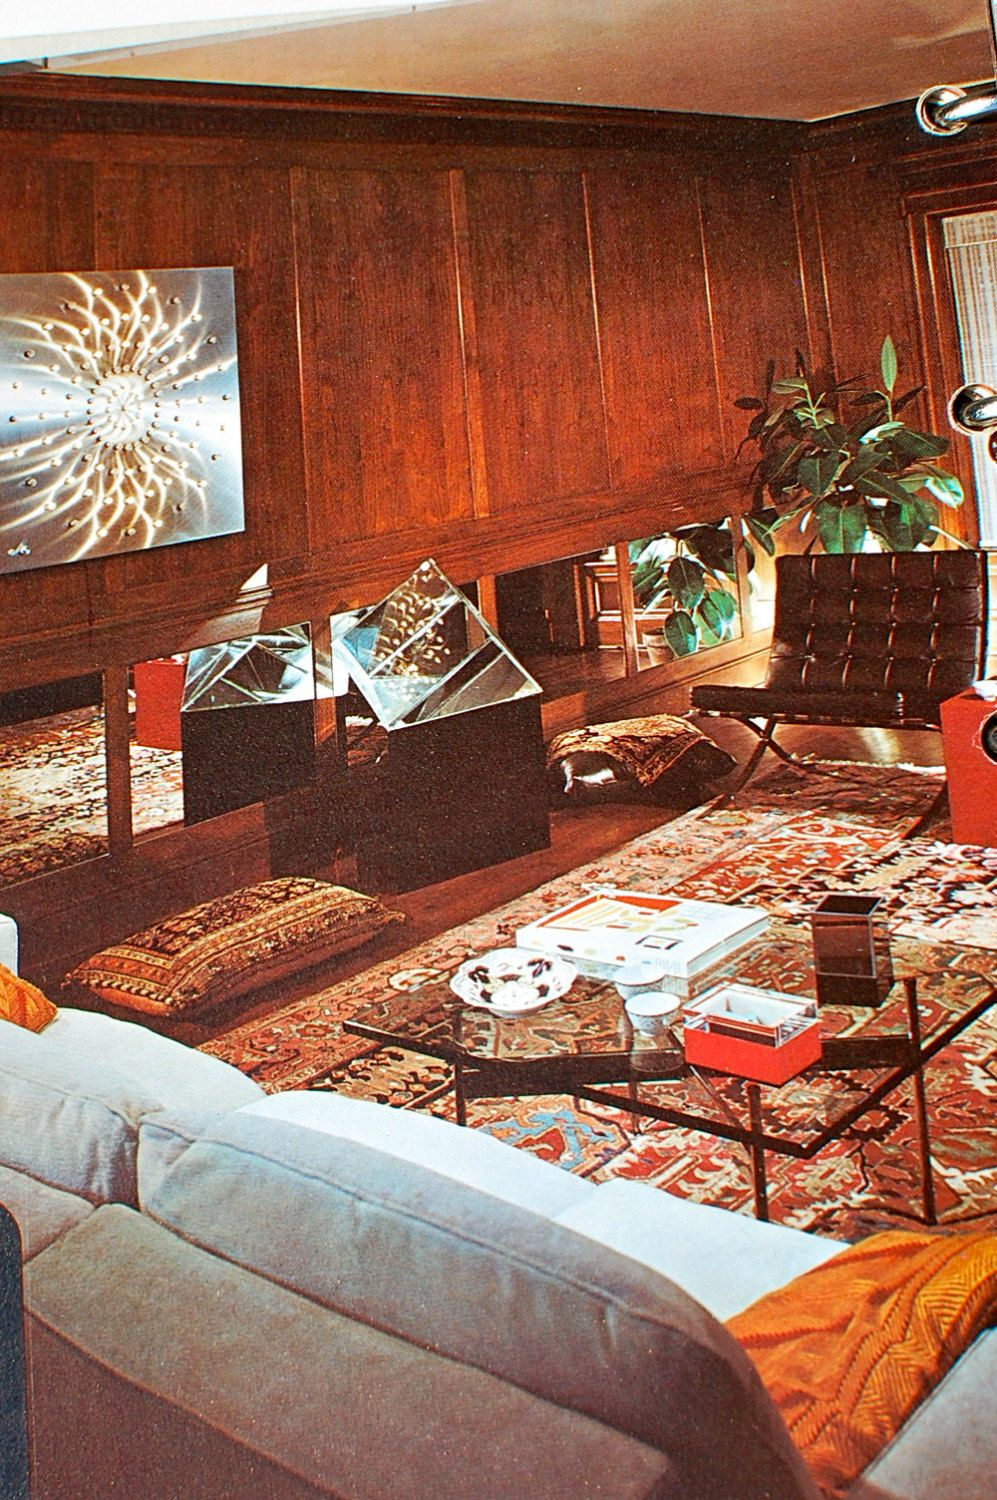 Better homes and gardens decorating book midcentury atomic vintage interior design also best   decor inspiration images diy ideas for home rh pinterest